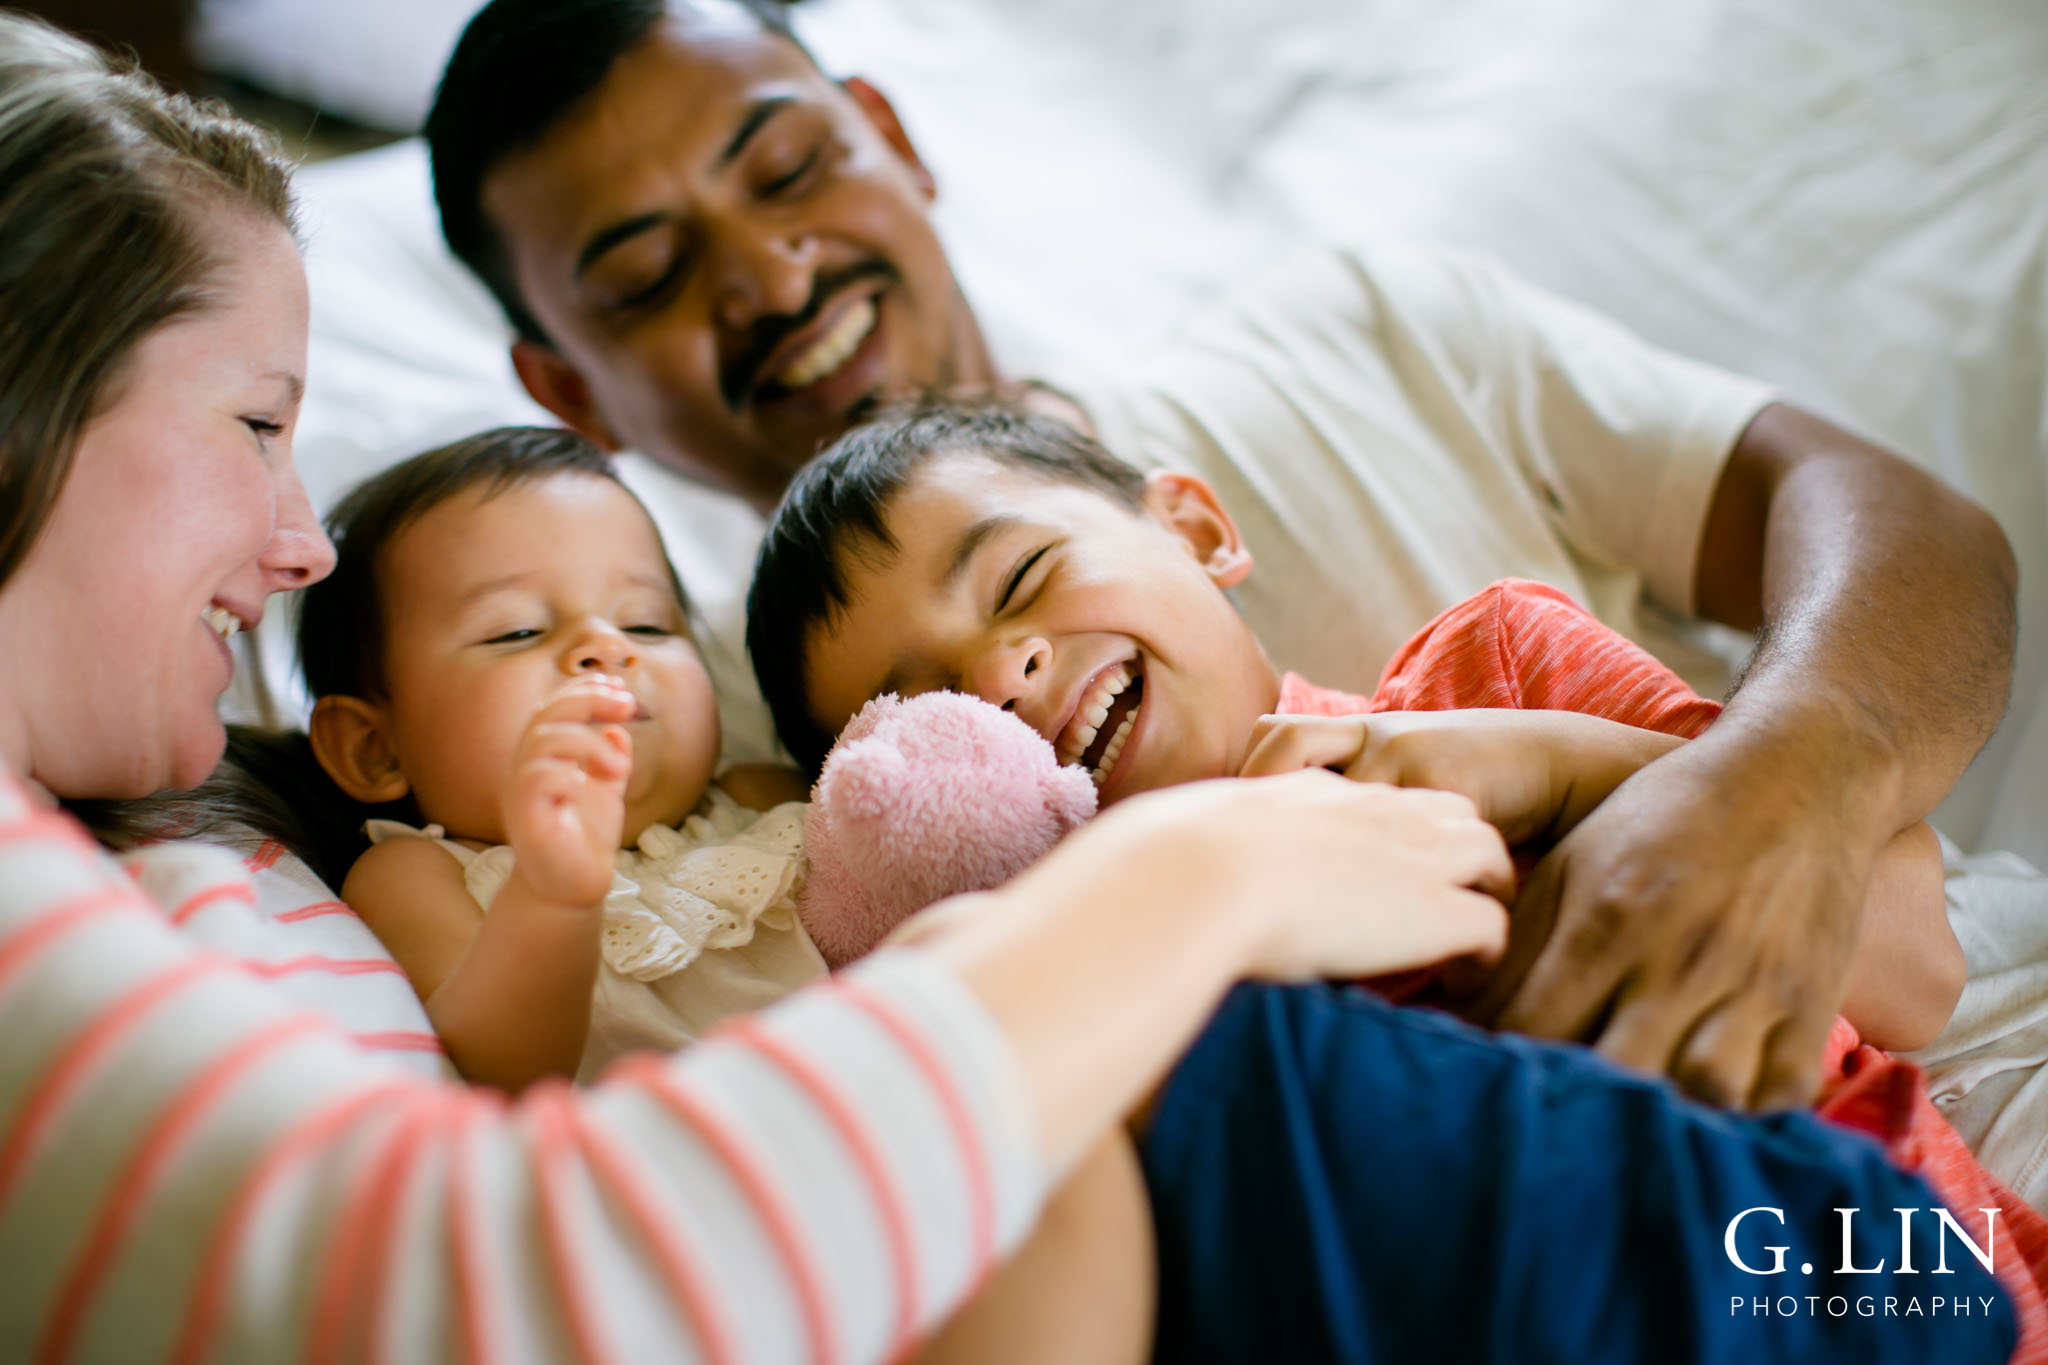 G. Lin Photography | Durham Family Photographer | Family on white bed tickling each other